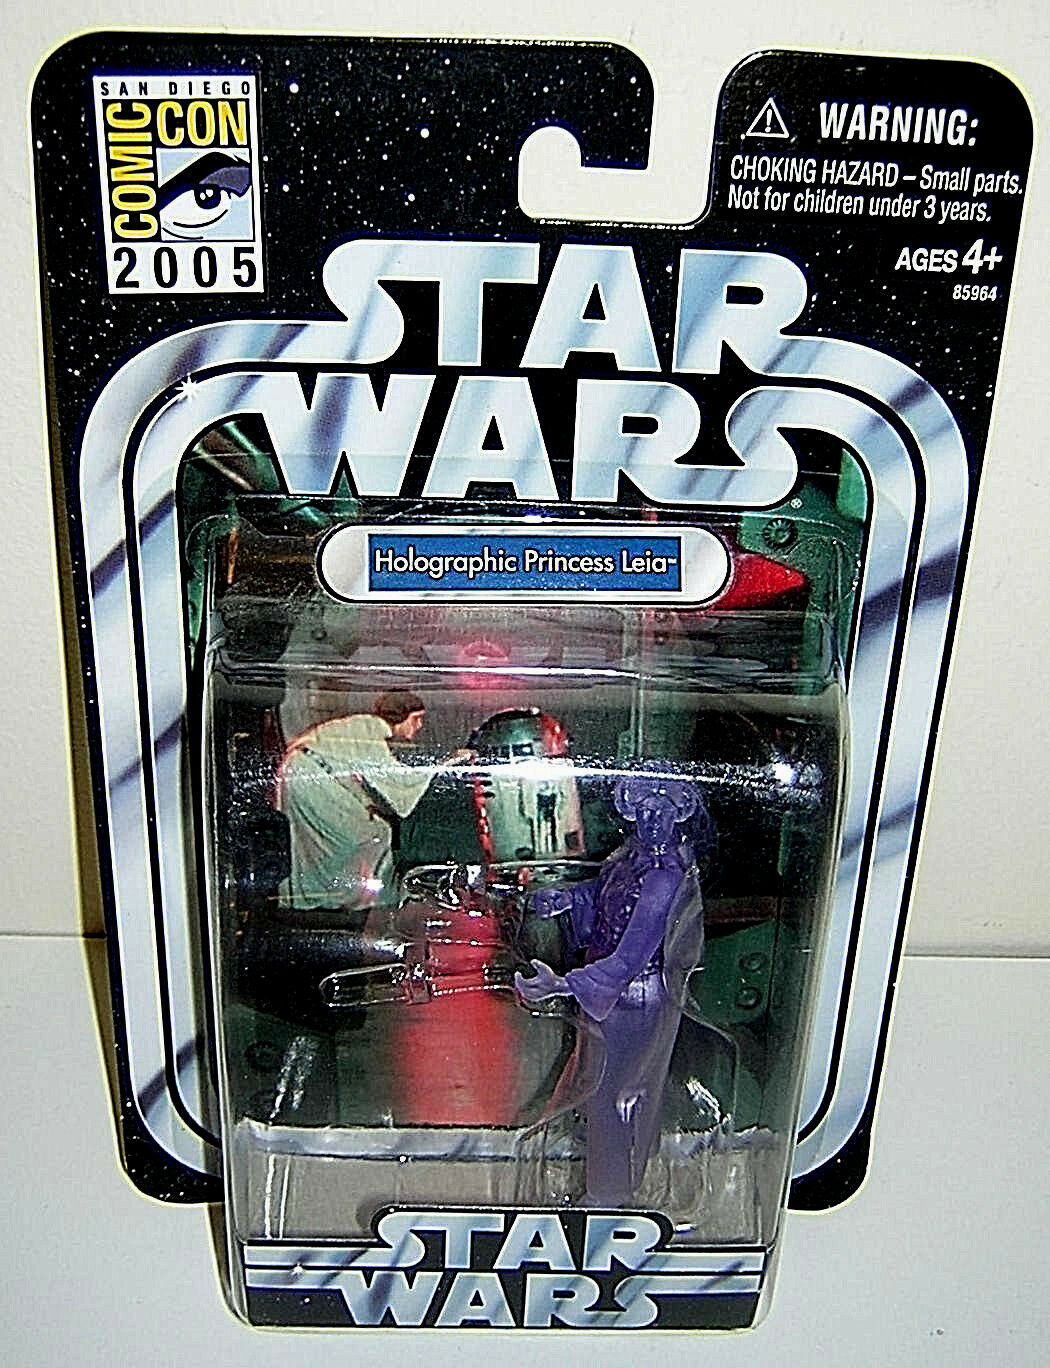 STAR WARS_Holographic Princess LEIA figure_ComicCon 05_Exclusive Limited Edition